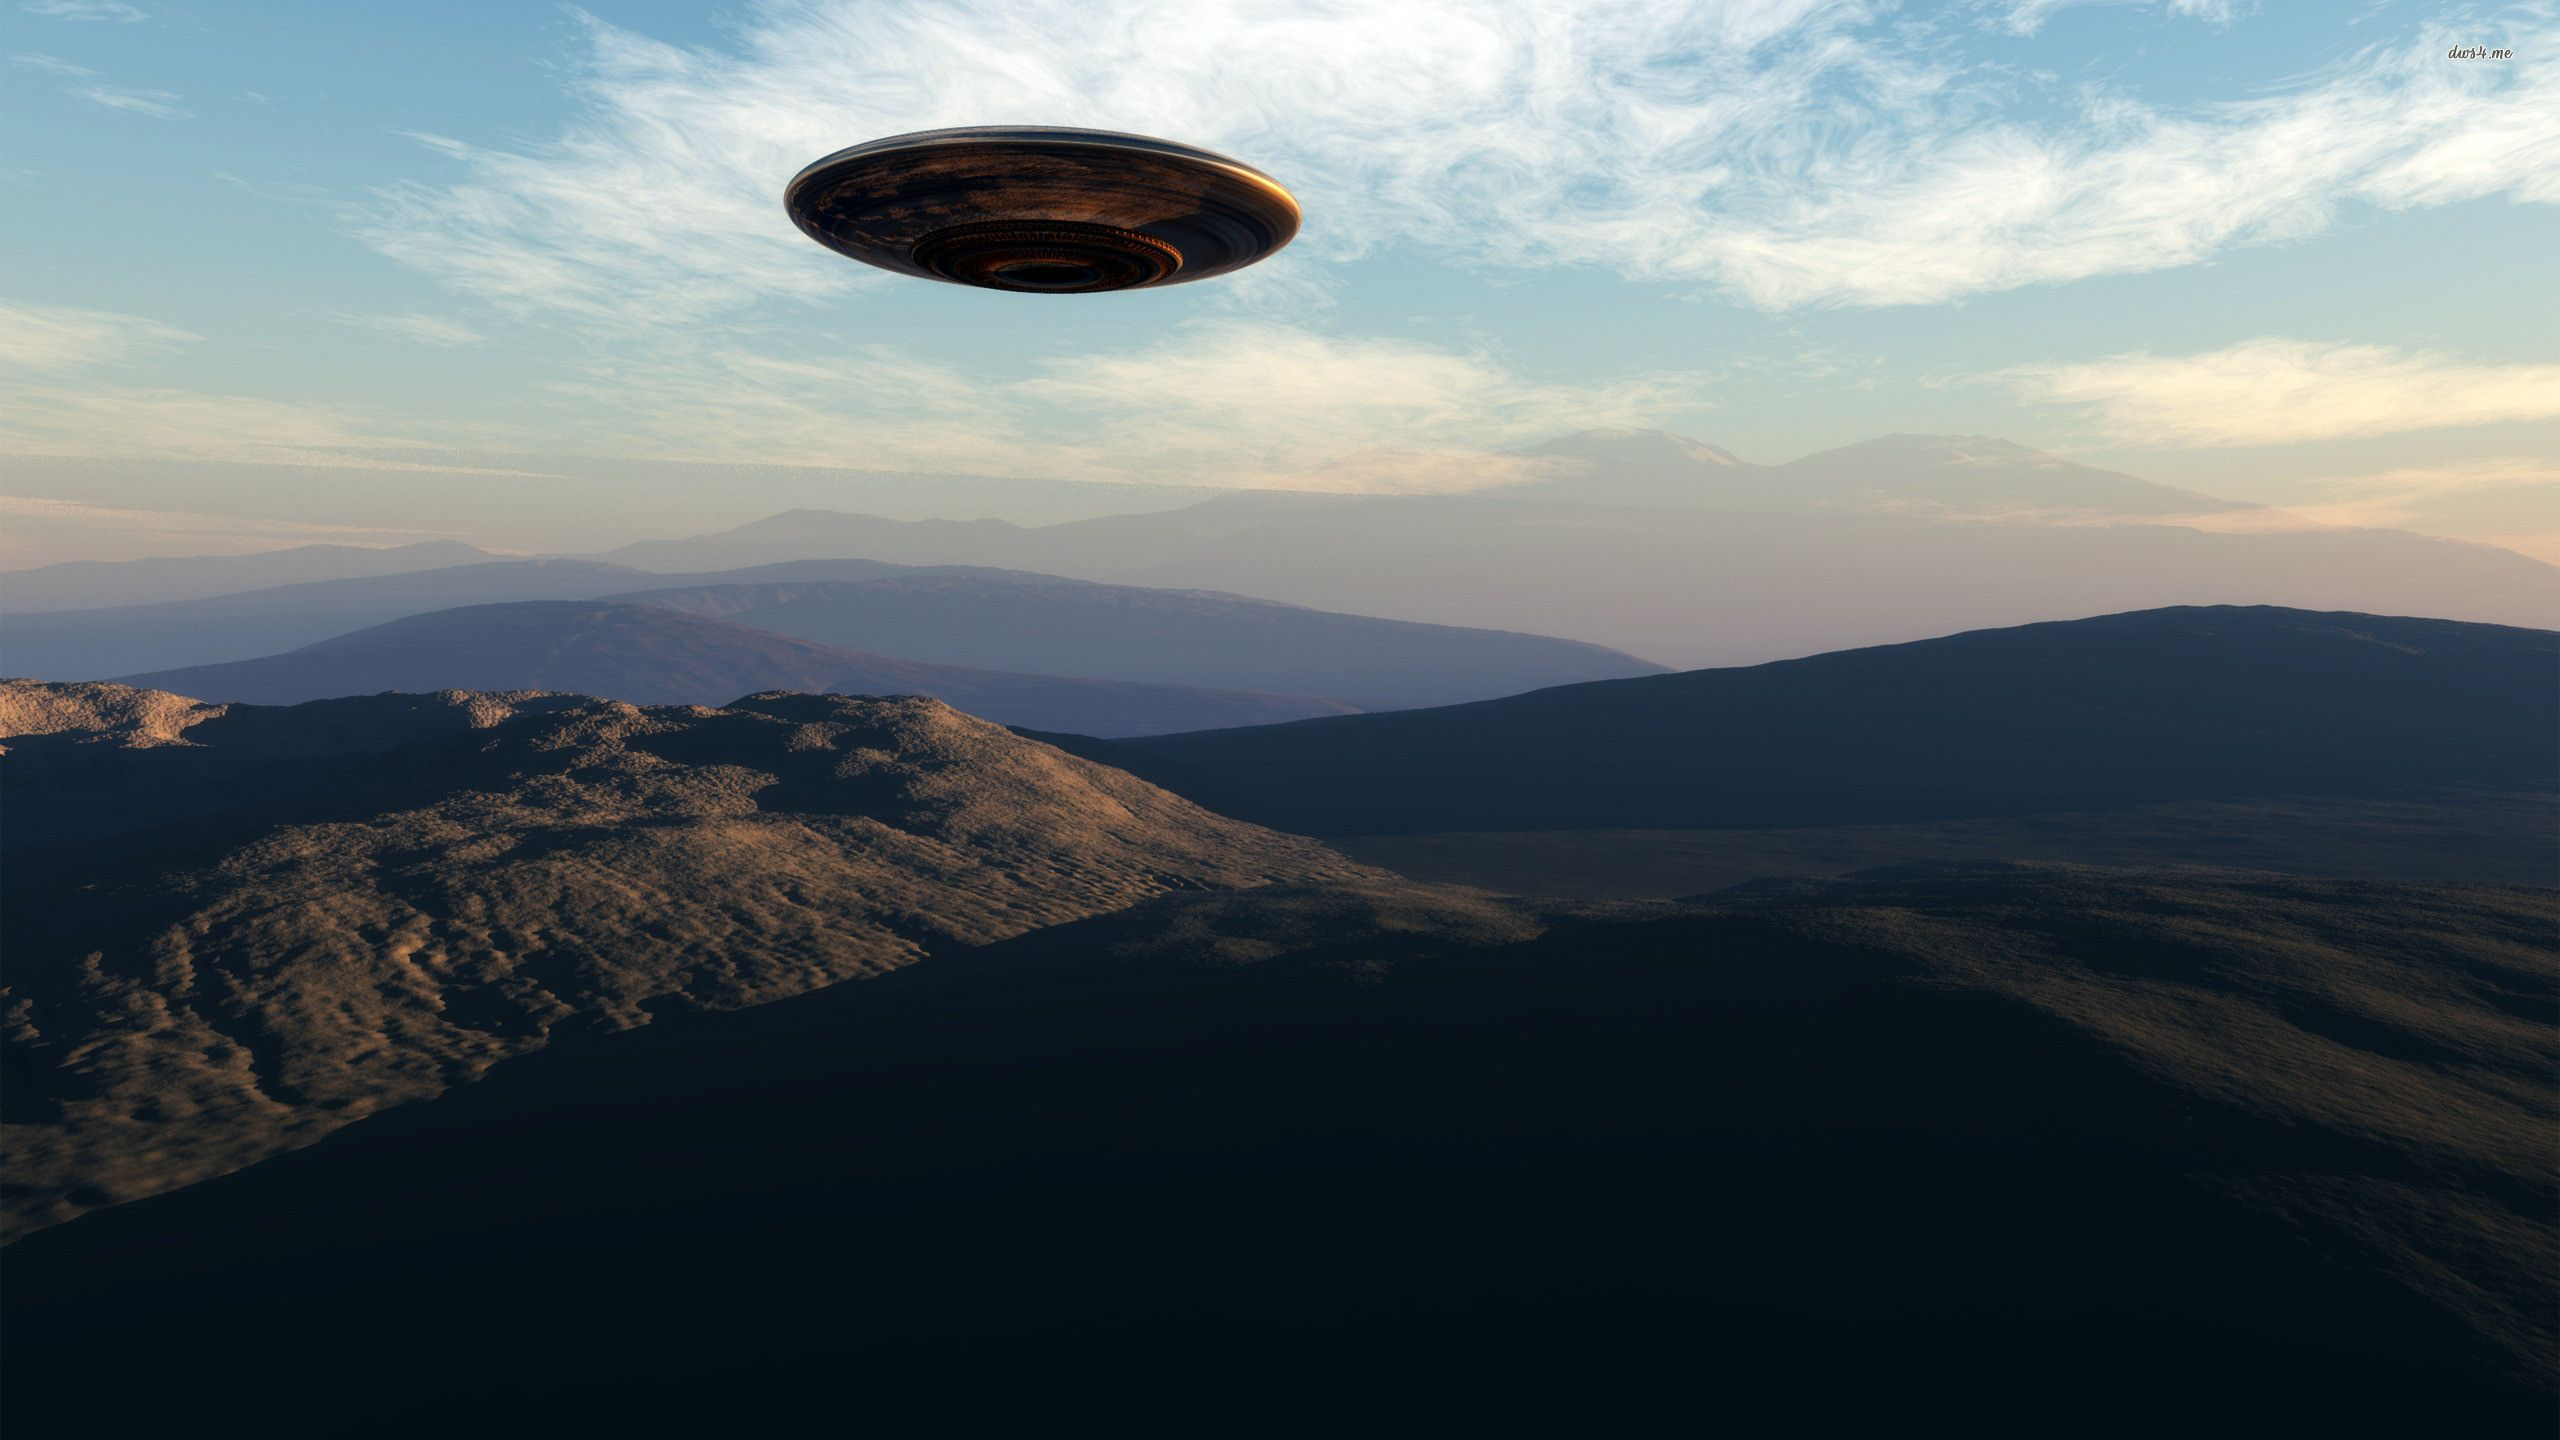 2560x1440 - UFO Wallpapers 11